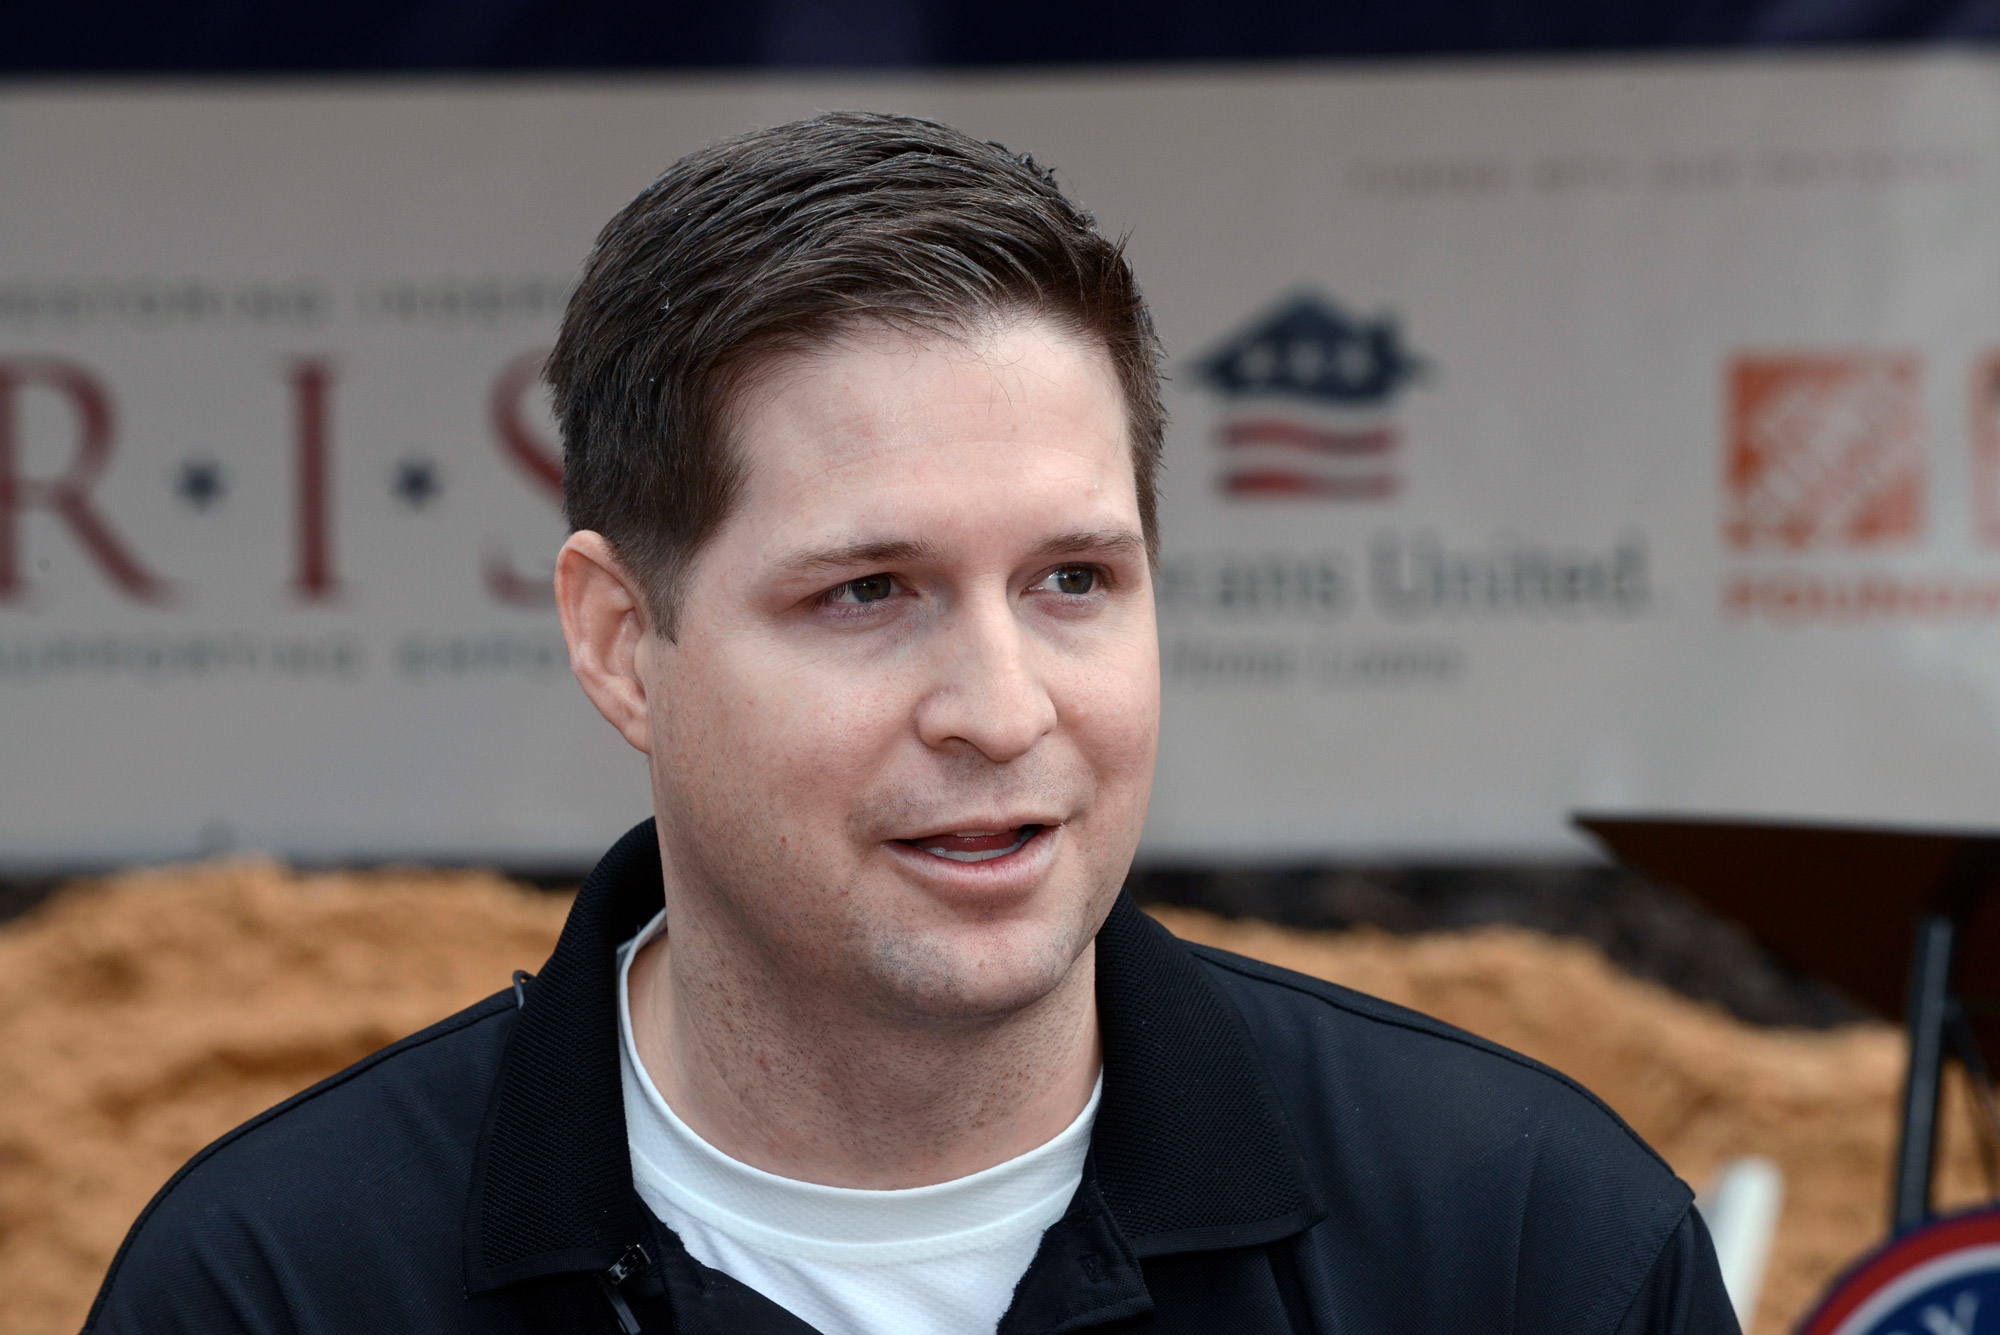 Retired U.S. Air Force Sr. Airman Brian Kolfage speaks with the media during a groundbreaking ceremony in Sandestin, Florida, on January 14, 2016.